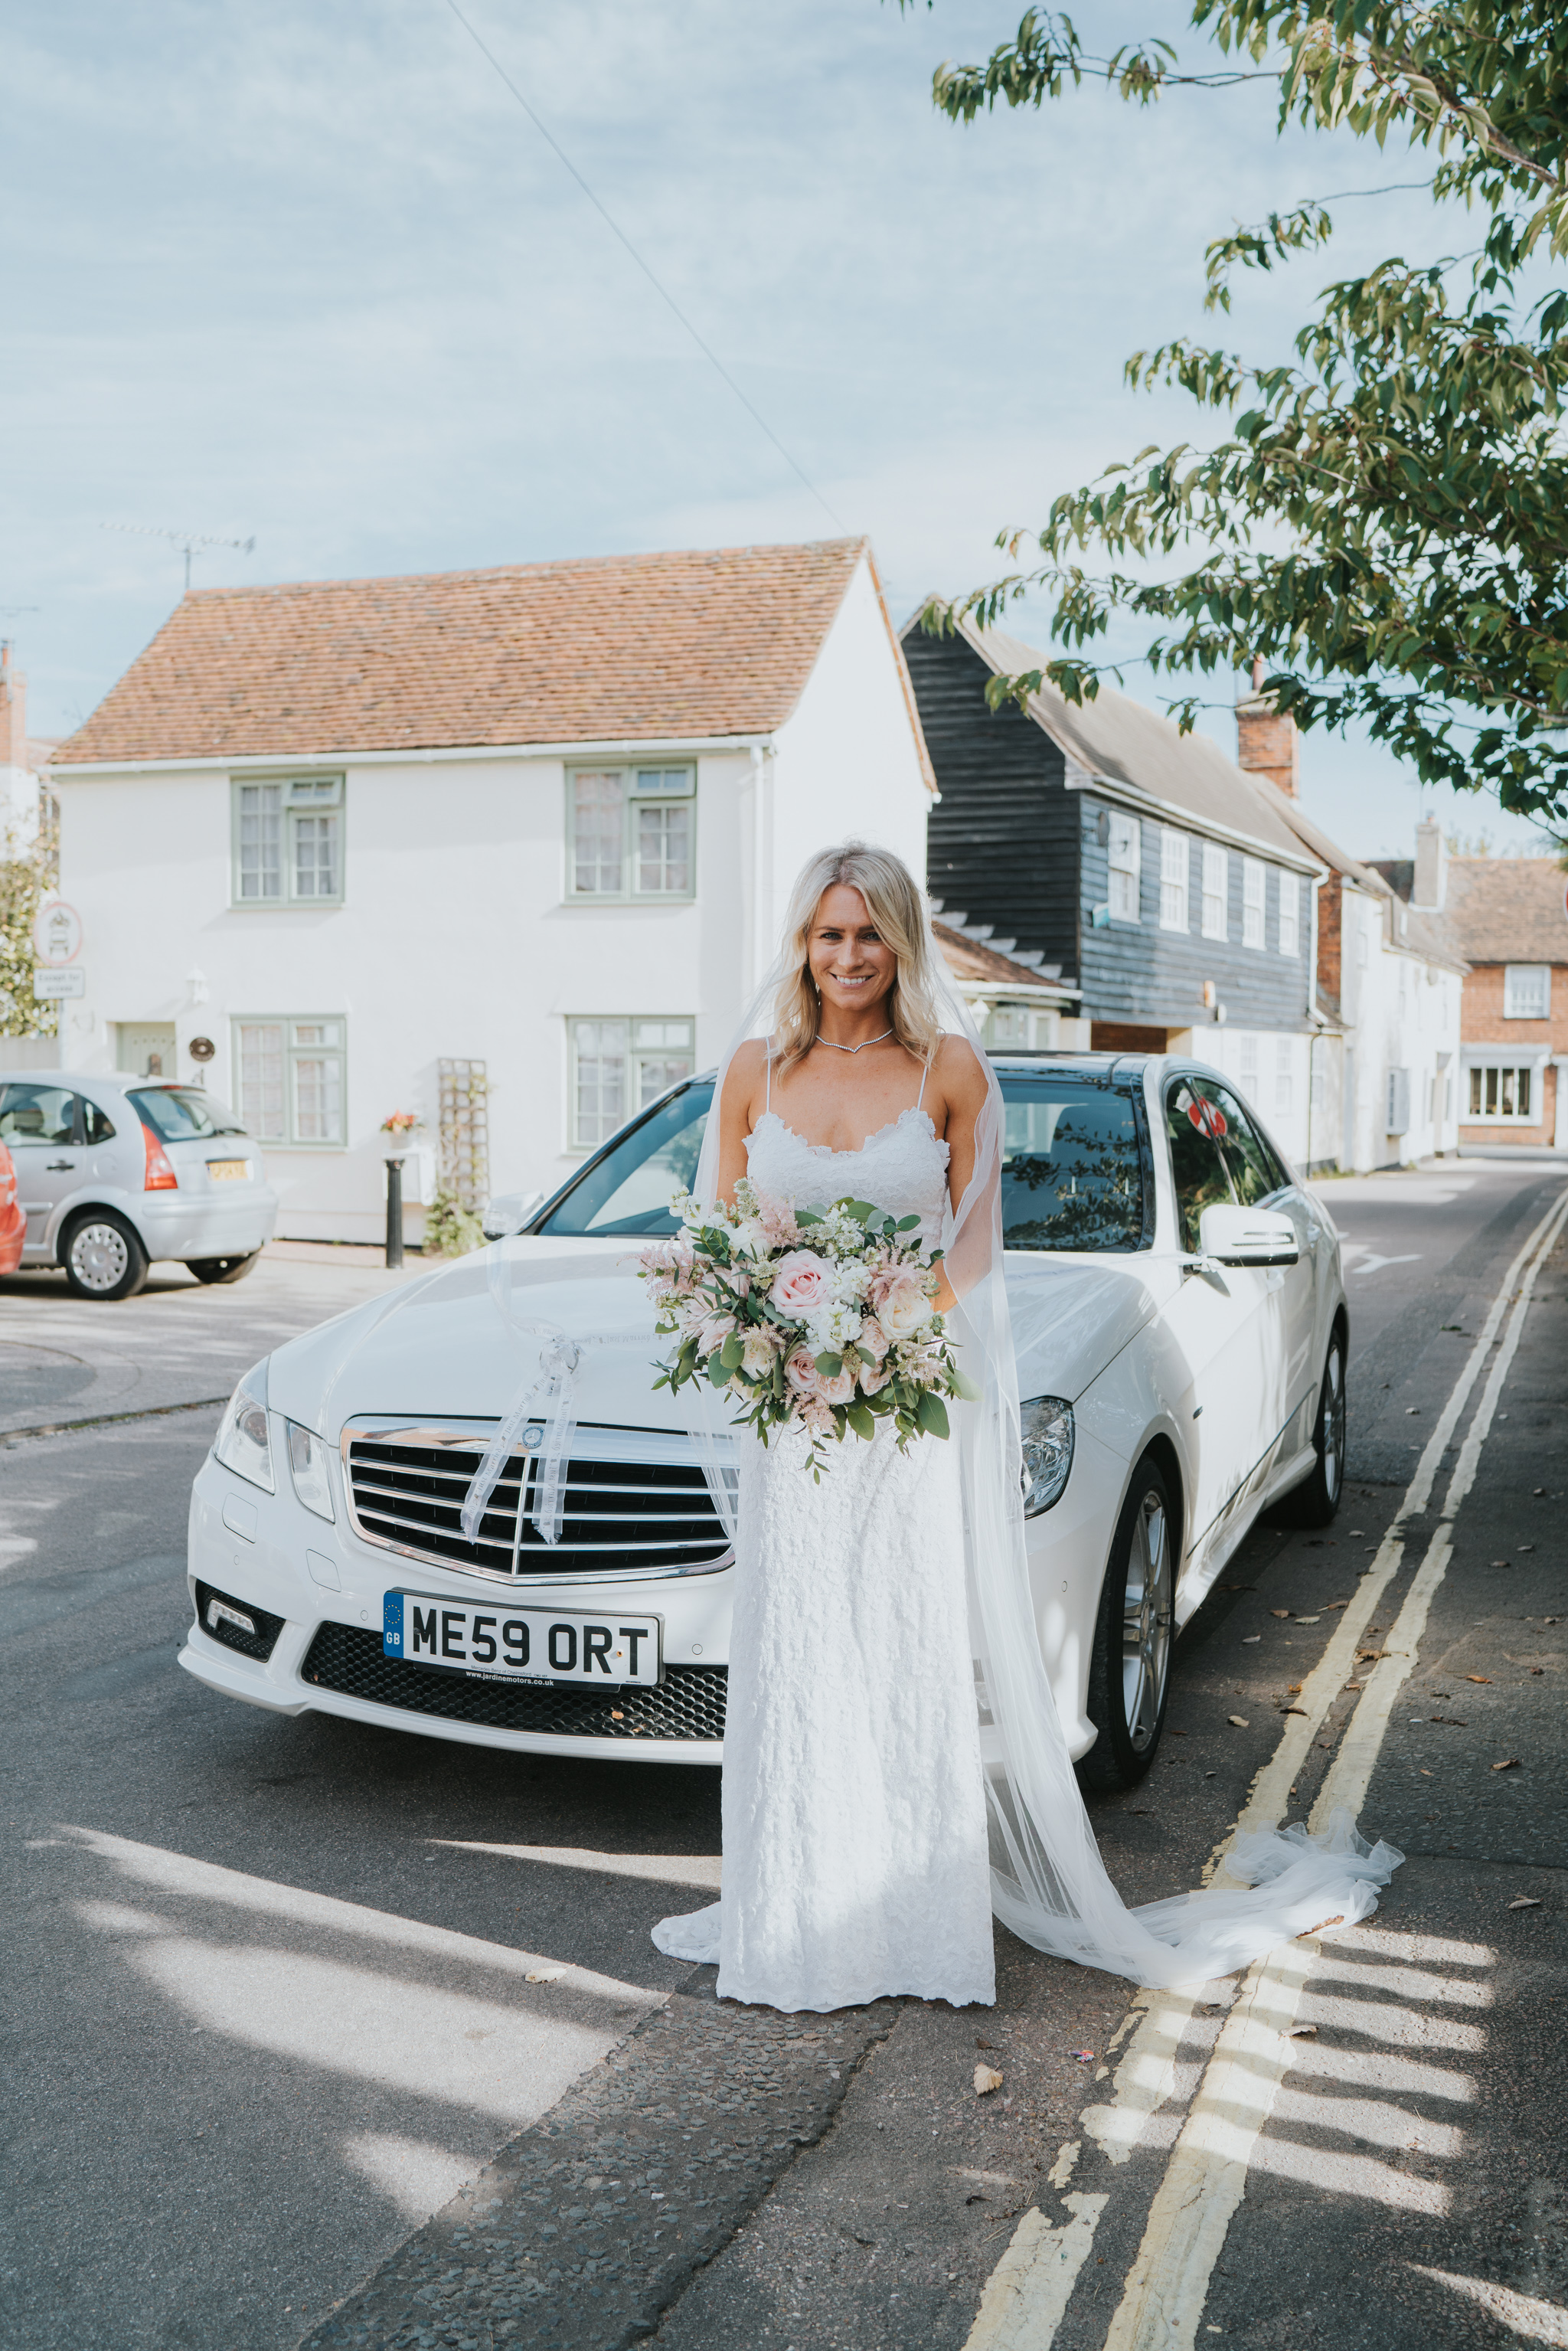 intimate-english-church-wedding-sarah-alex-colchester-essex-grace-elizabeth-colchester-essex-alternative-wedding-lifestyle-photographer-essex-suffolk-norfolk-devon (28 of 92).jpg